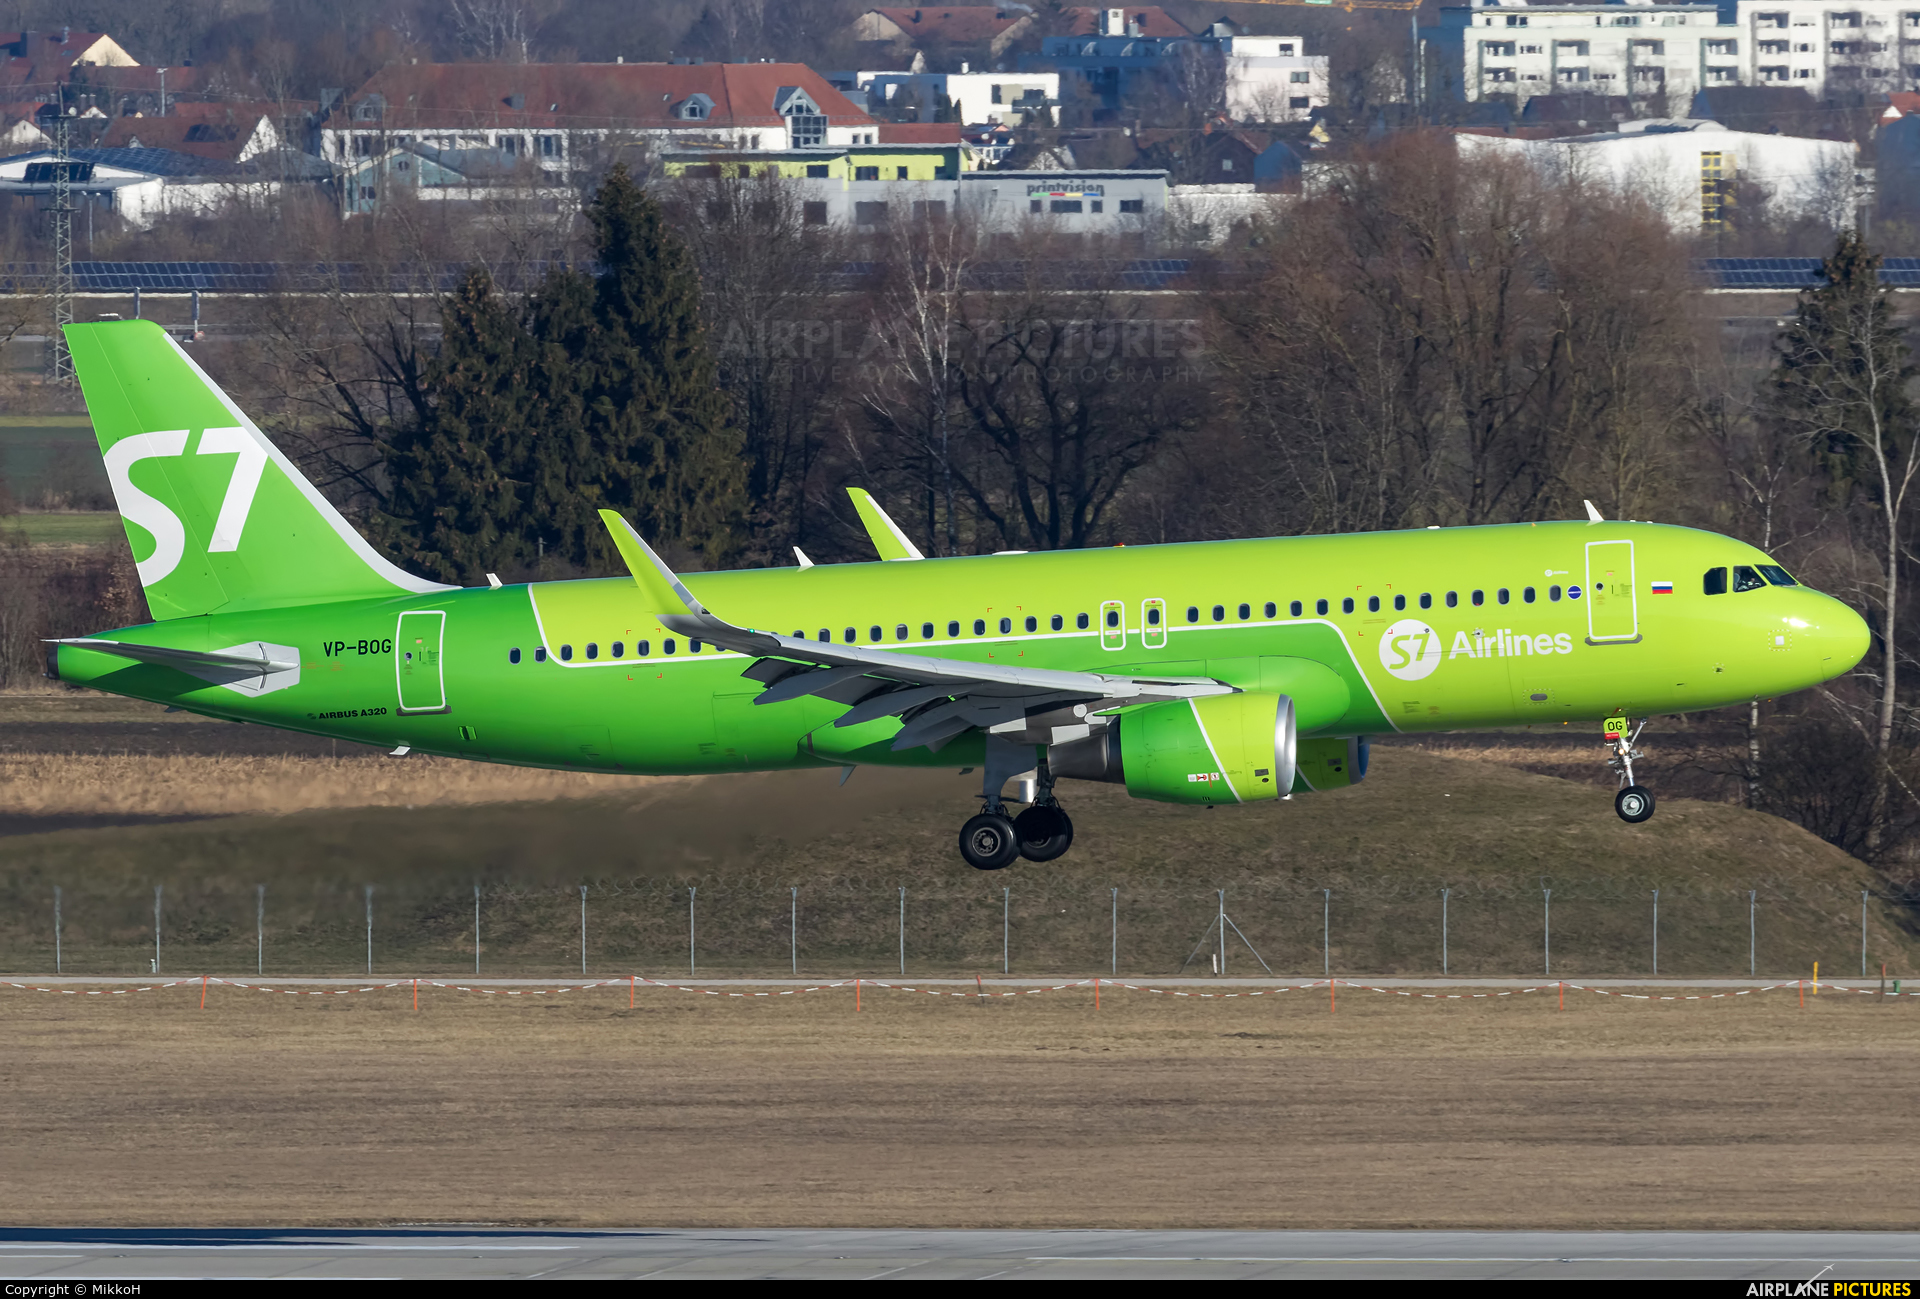 S7 Airlines VP-BOG aircraft at Munich